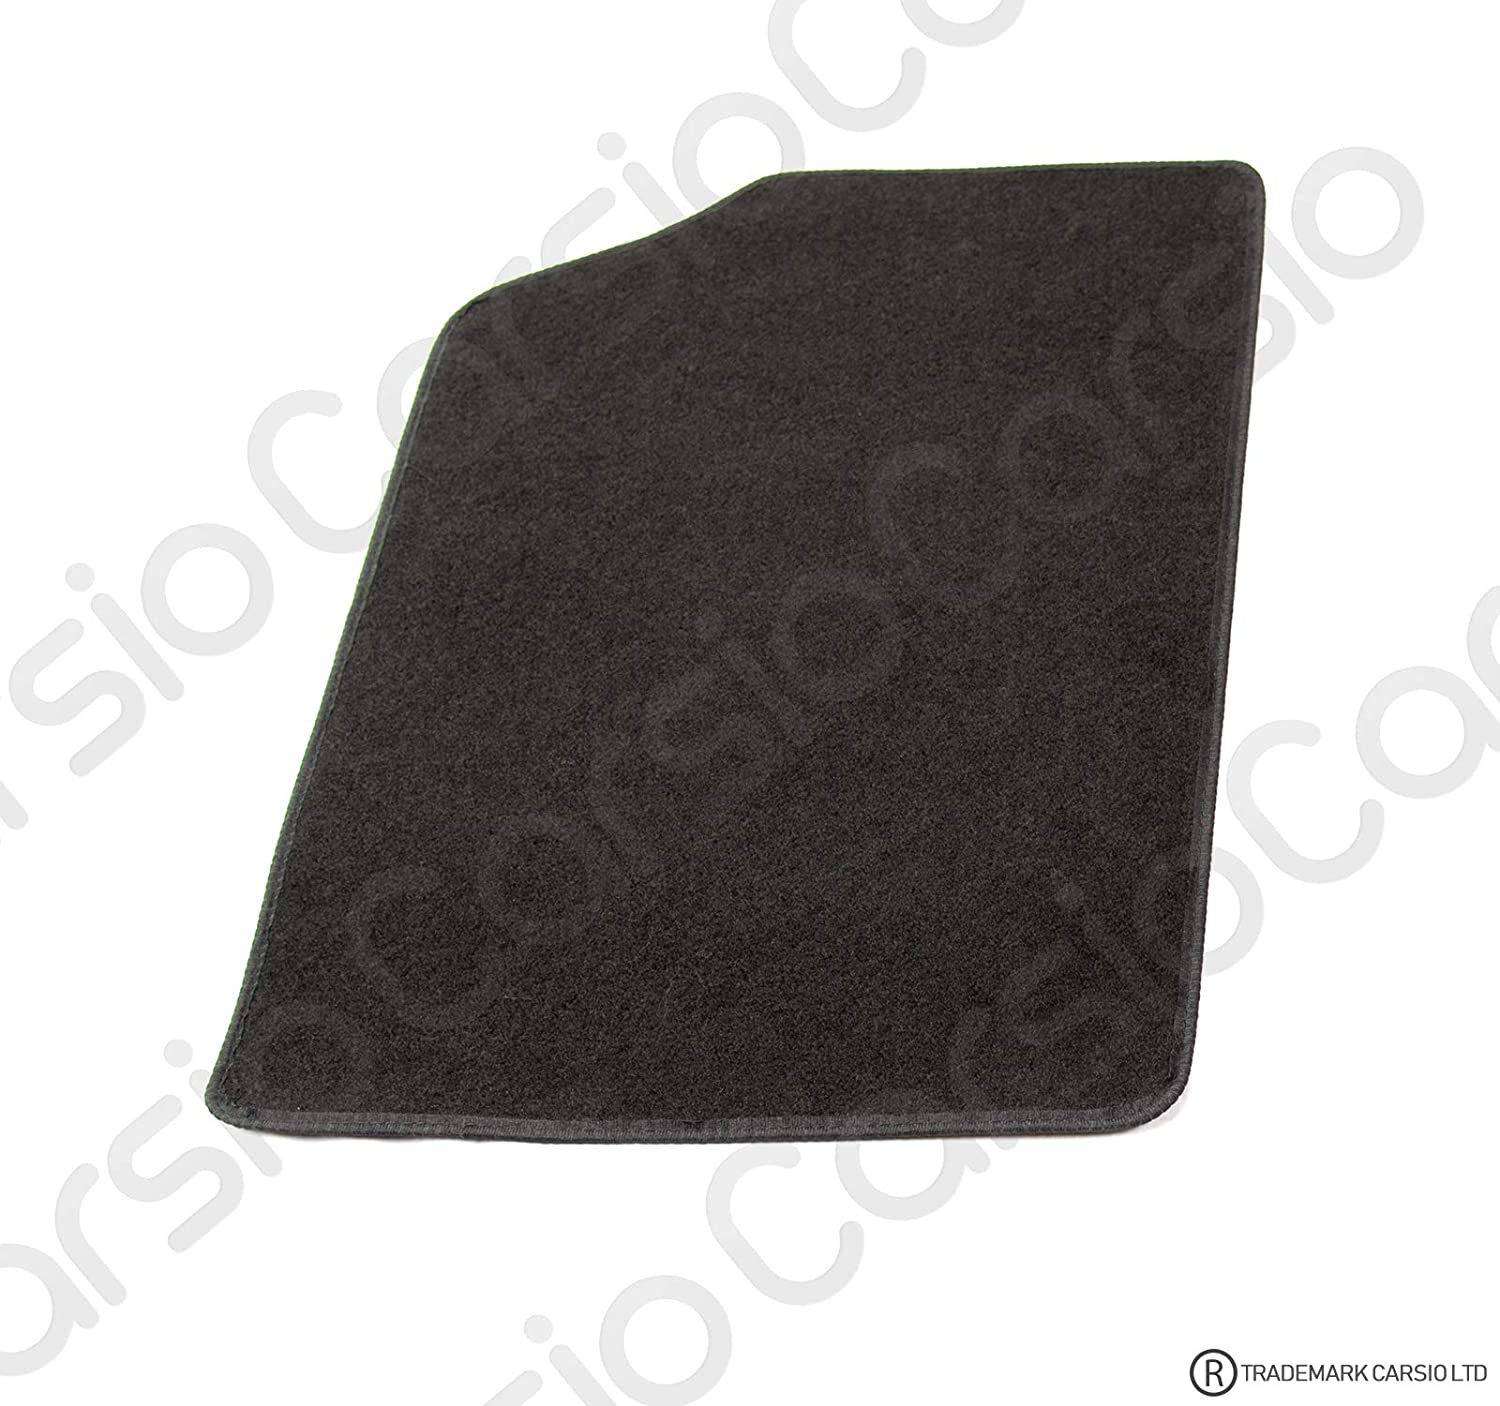 Carsio Tailored Black Carpet Car Mats for Citroen DS3 2009 to 2015-4 Piece Set with 4 Clips